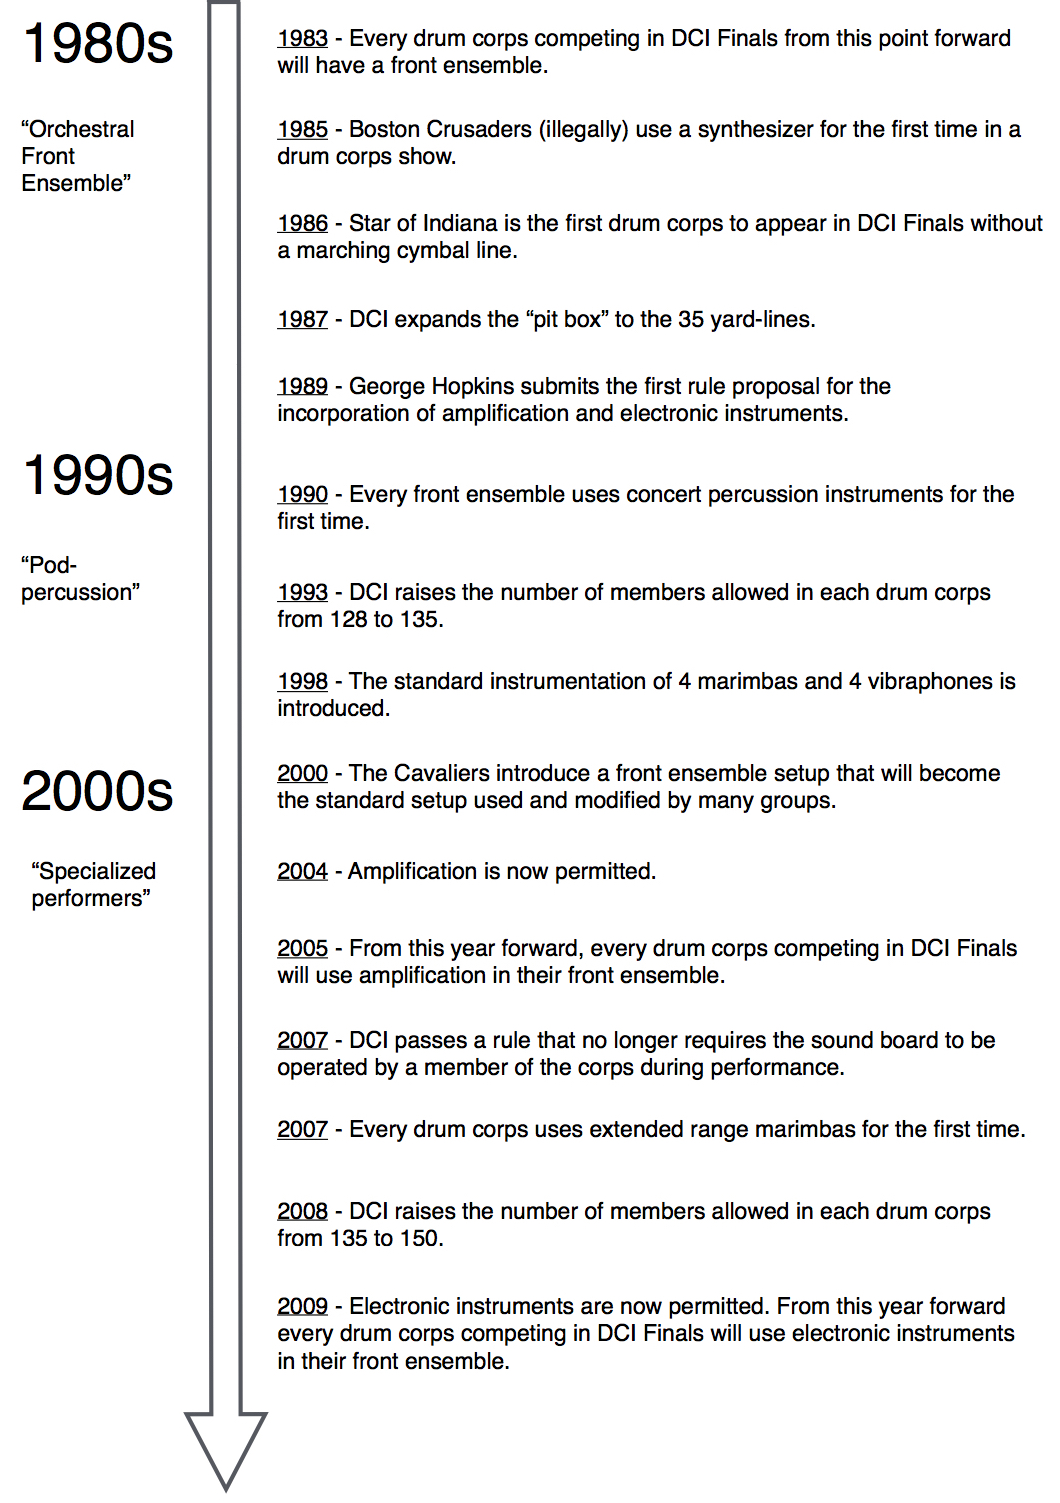 History of the Front Ensemble in DCI Timeline pg 2.jpg